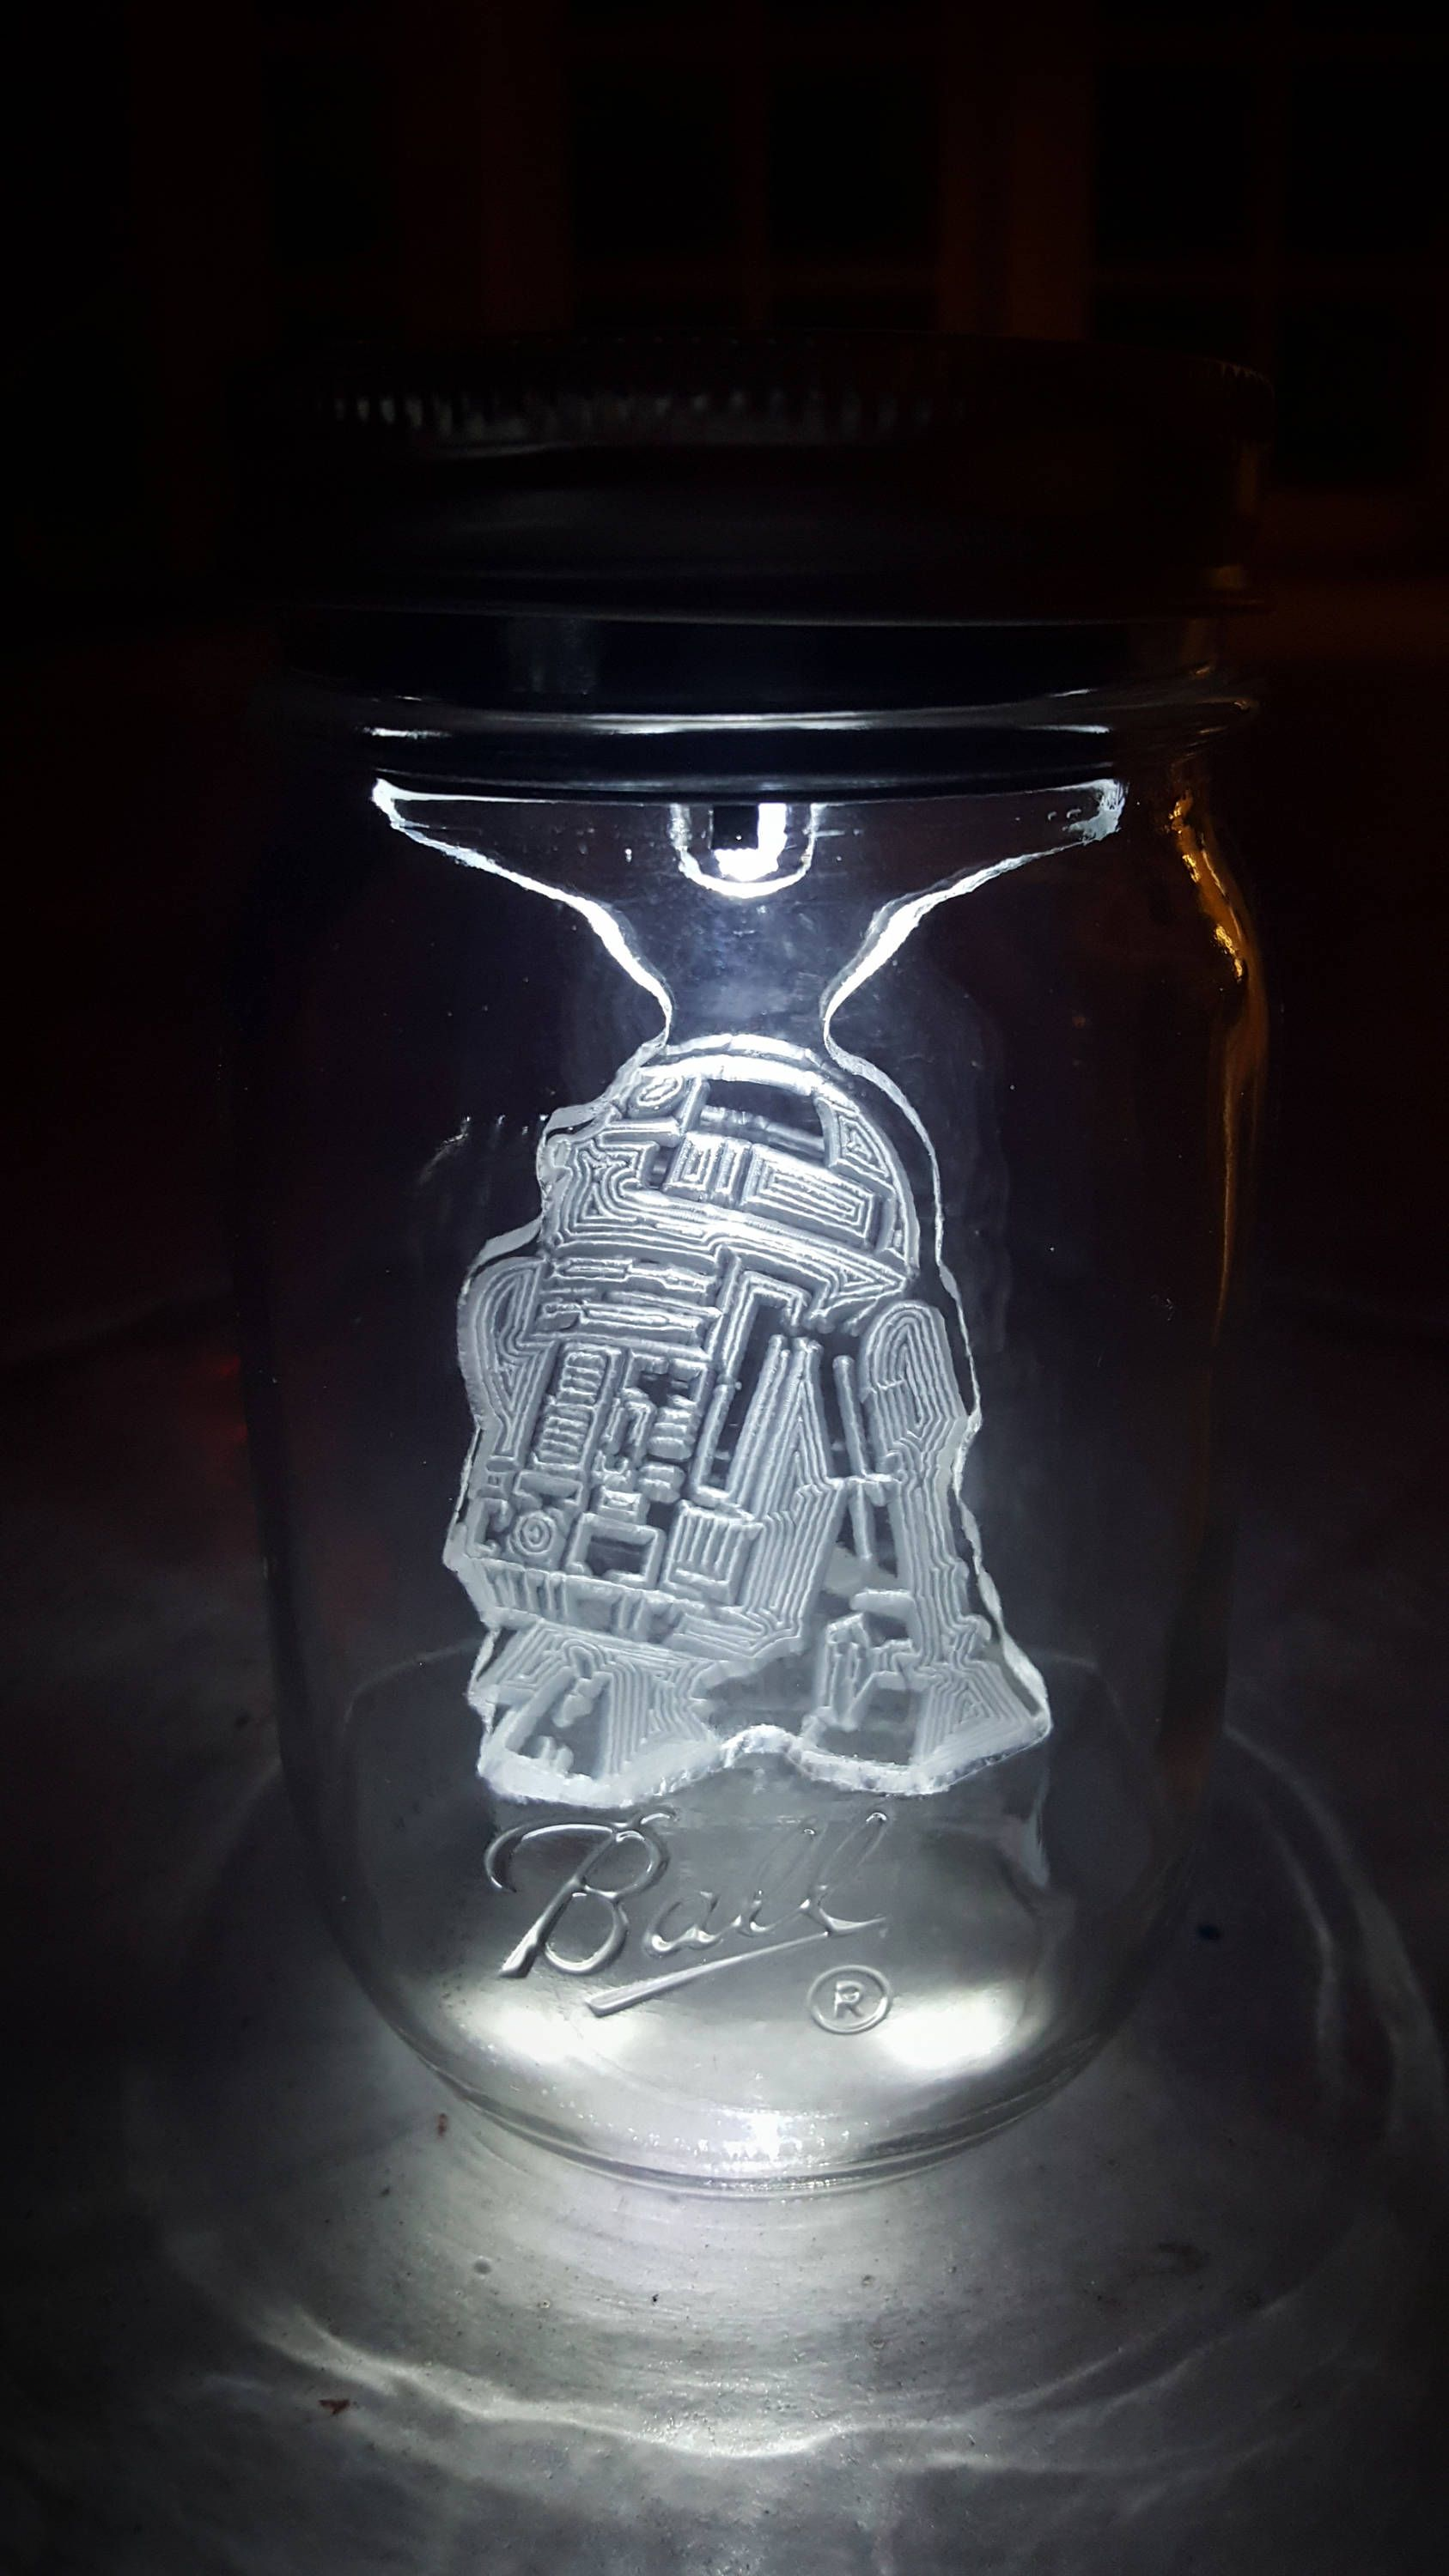 Sol Lights R2d2 Star Wars Mason Jar Solar Light Force Awakens Night Outdoor Indoor Decoration Etched Acrylic Droid By Hexinc On Etsy